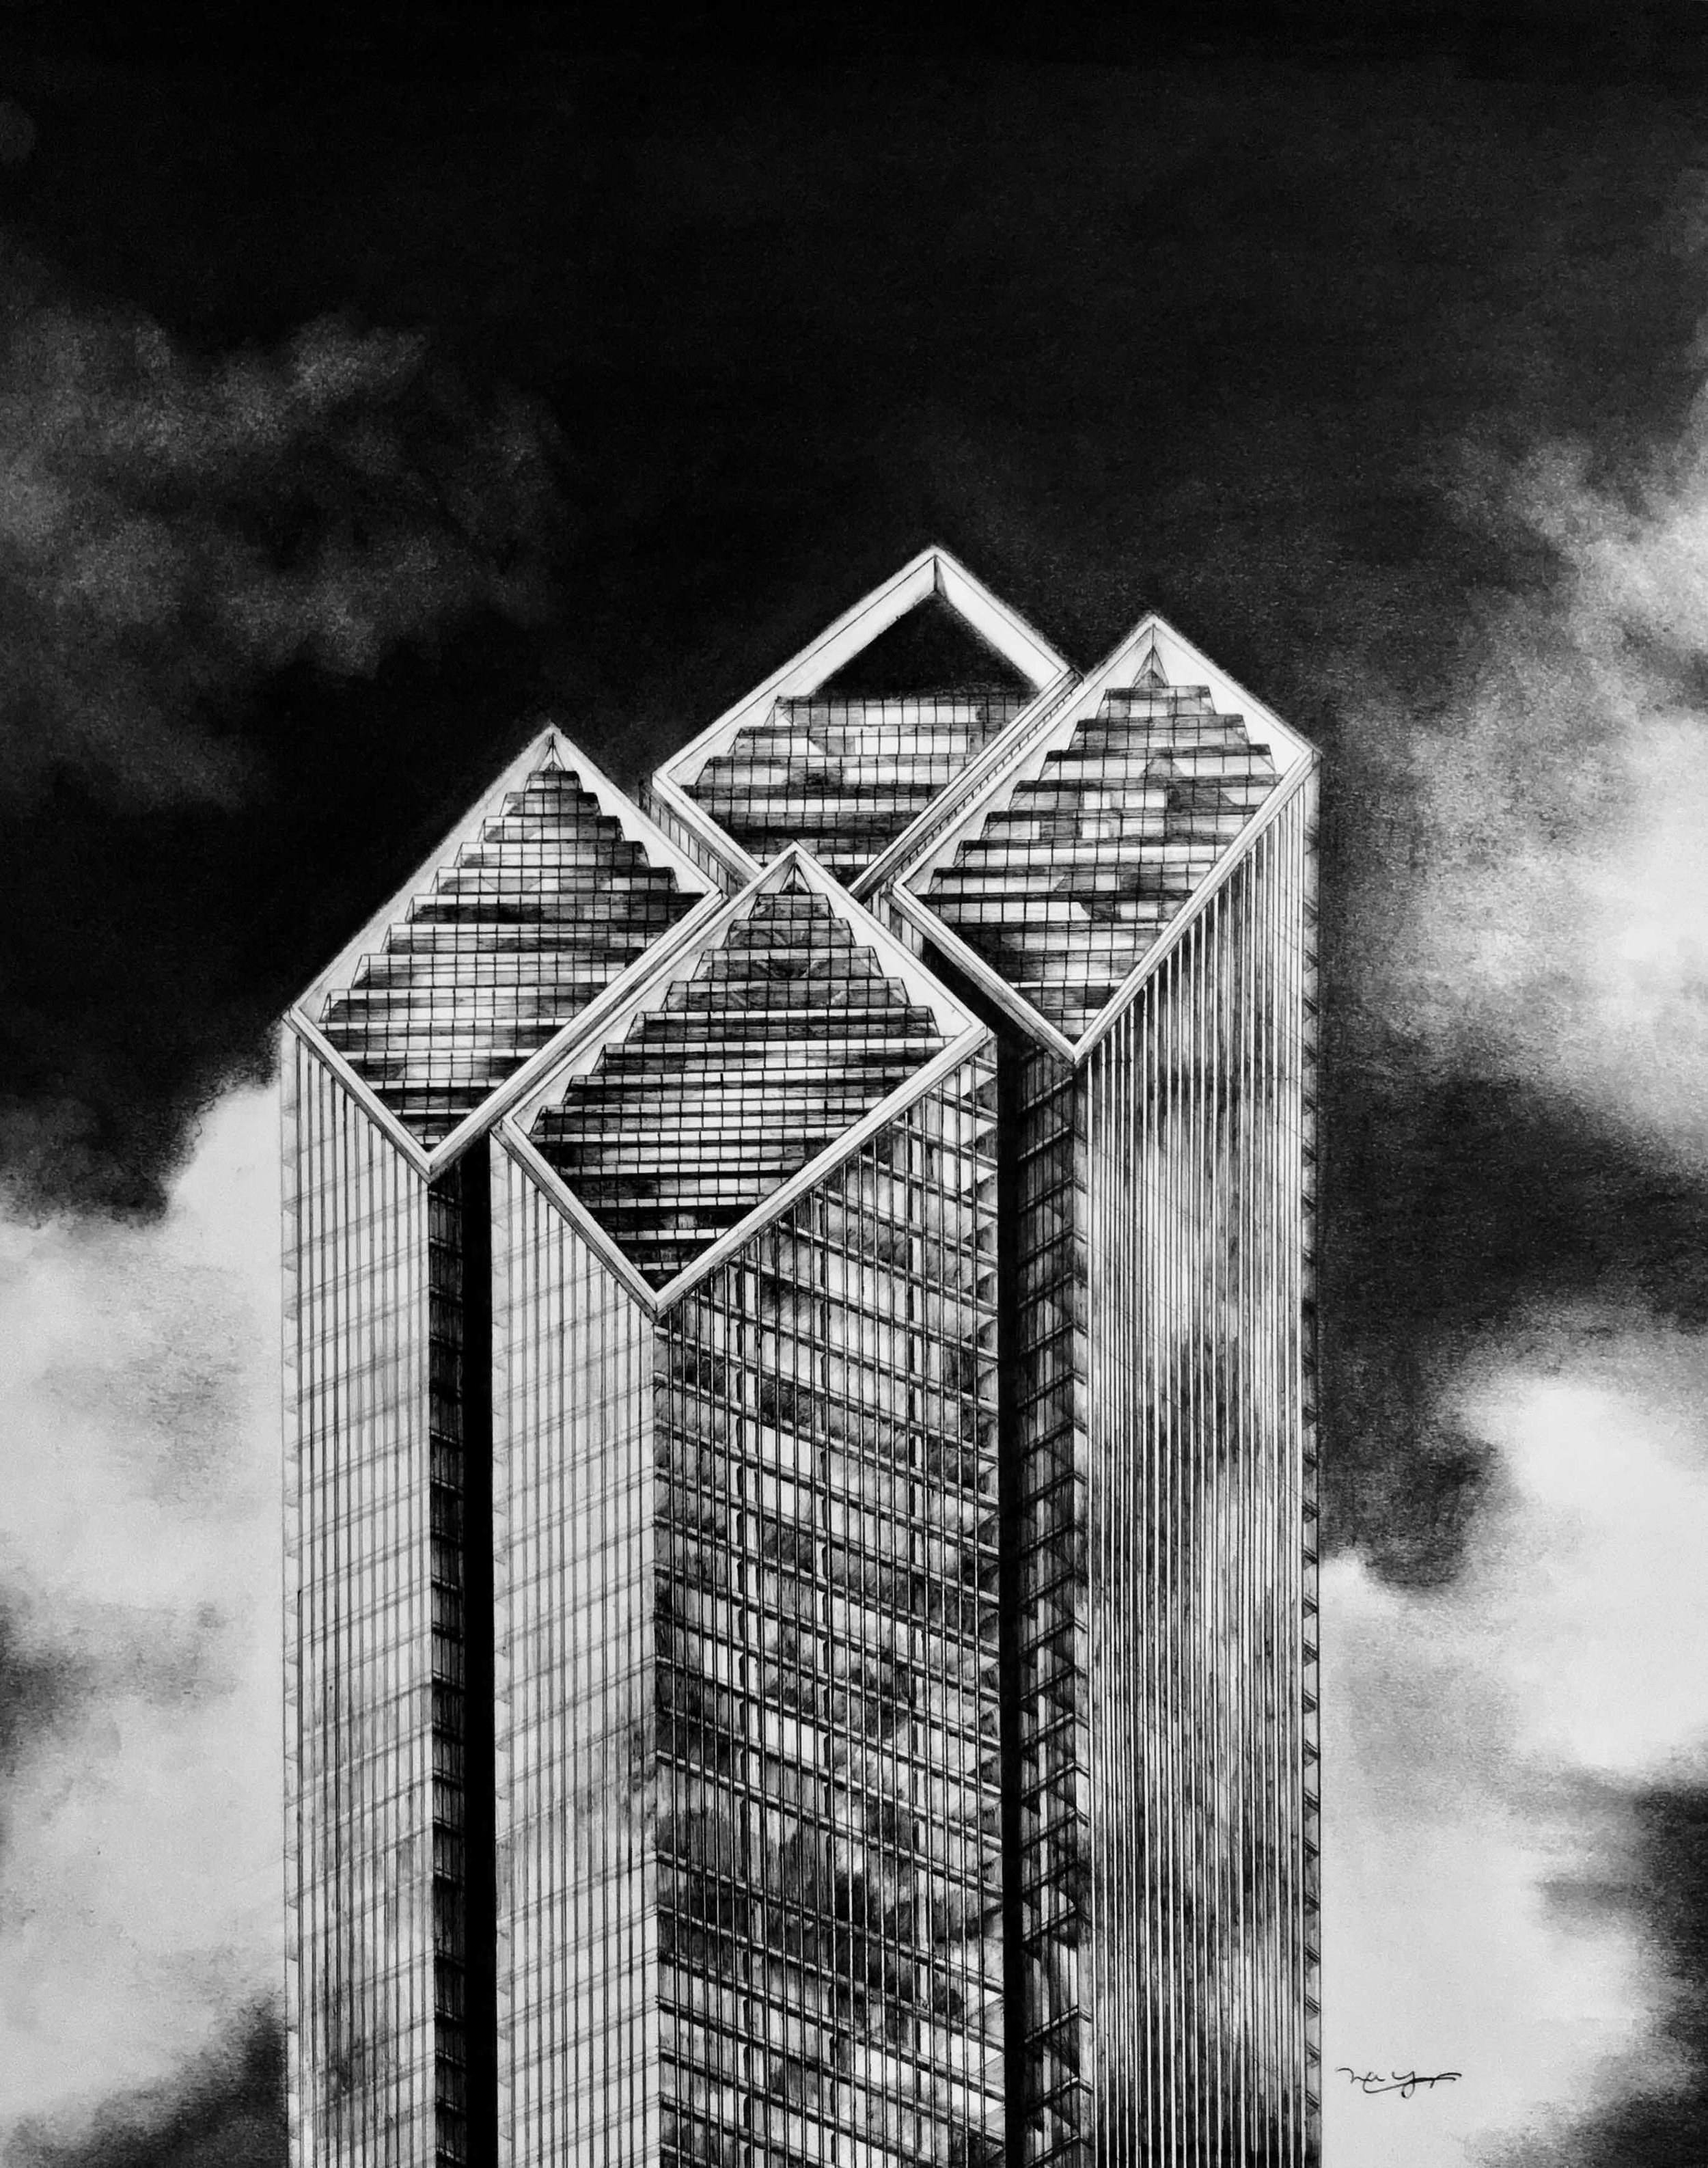 """Norman Foster's """"diamond-topped""""proposal for 2 World Trade Center, drawing by Michael Young,  click here to purchase a signed artist's print ."""